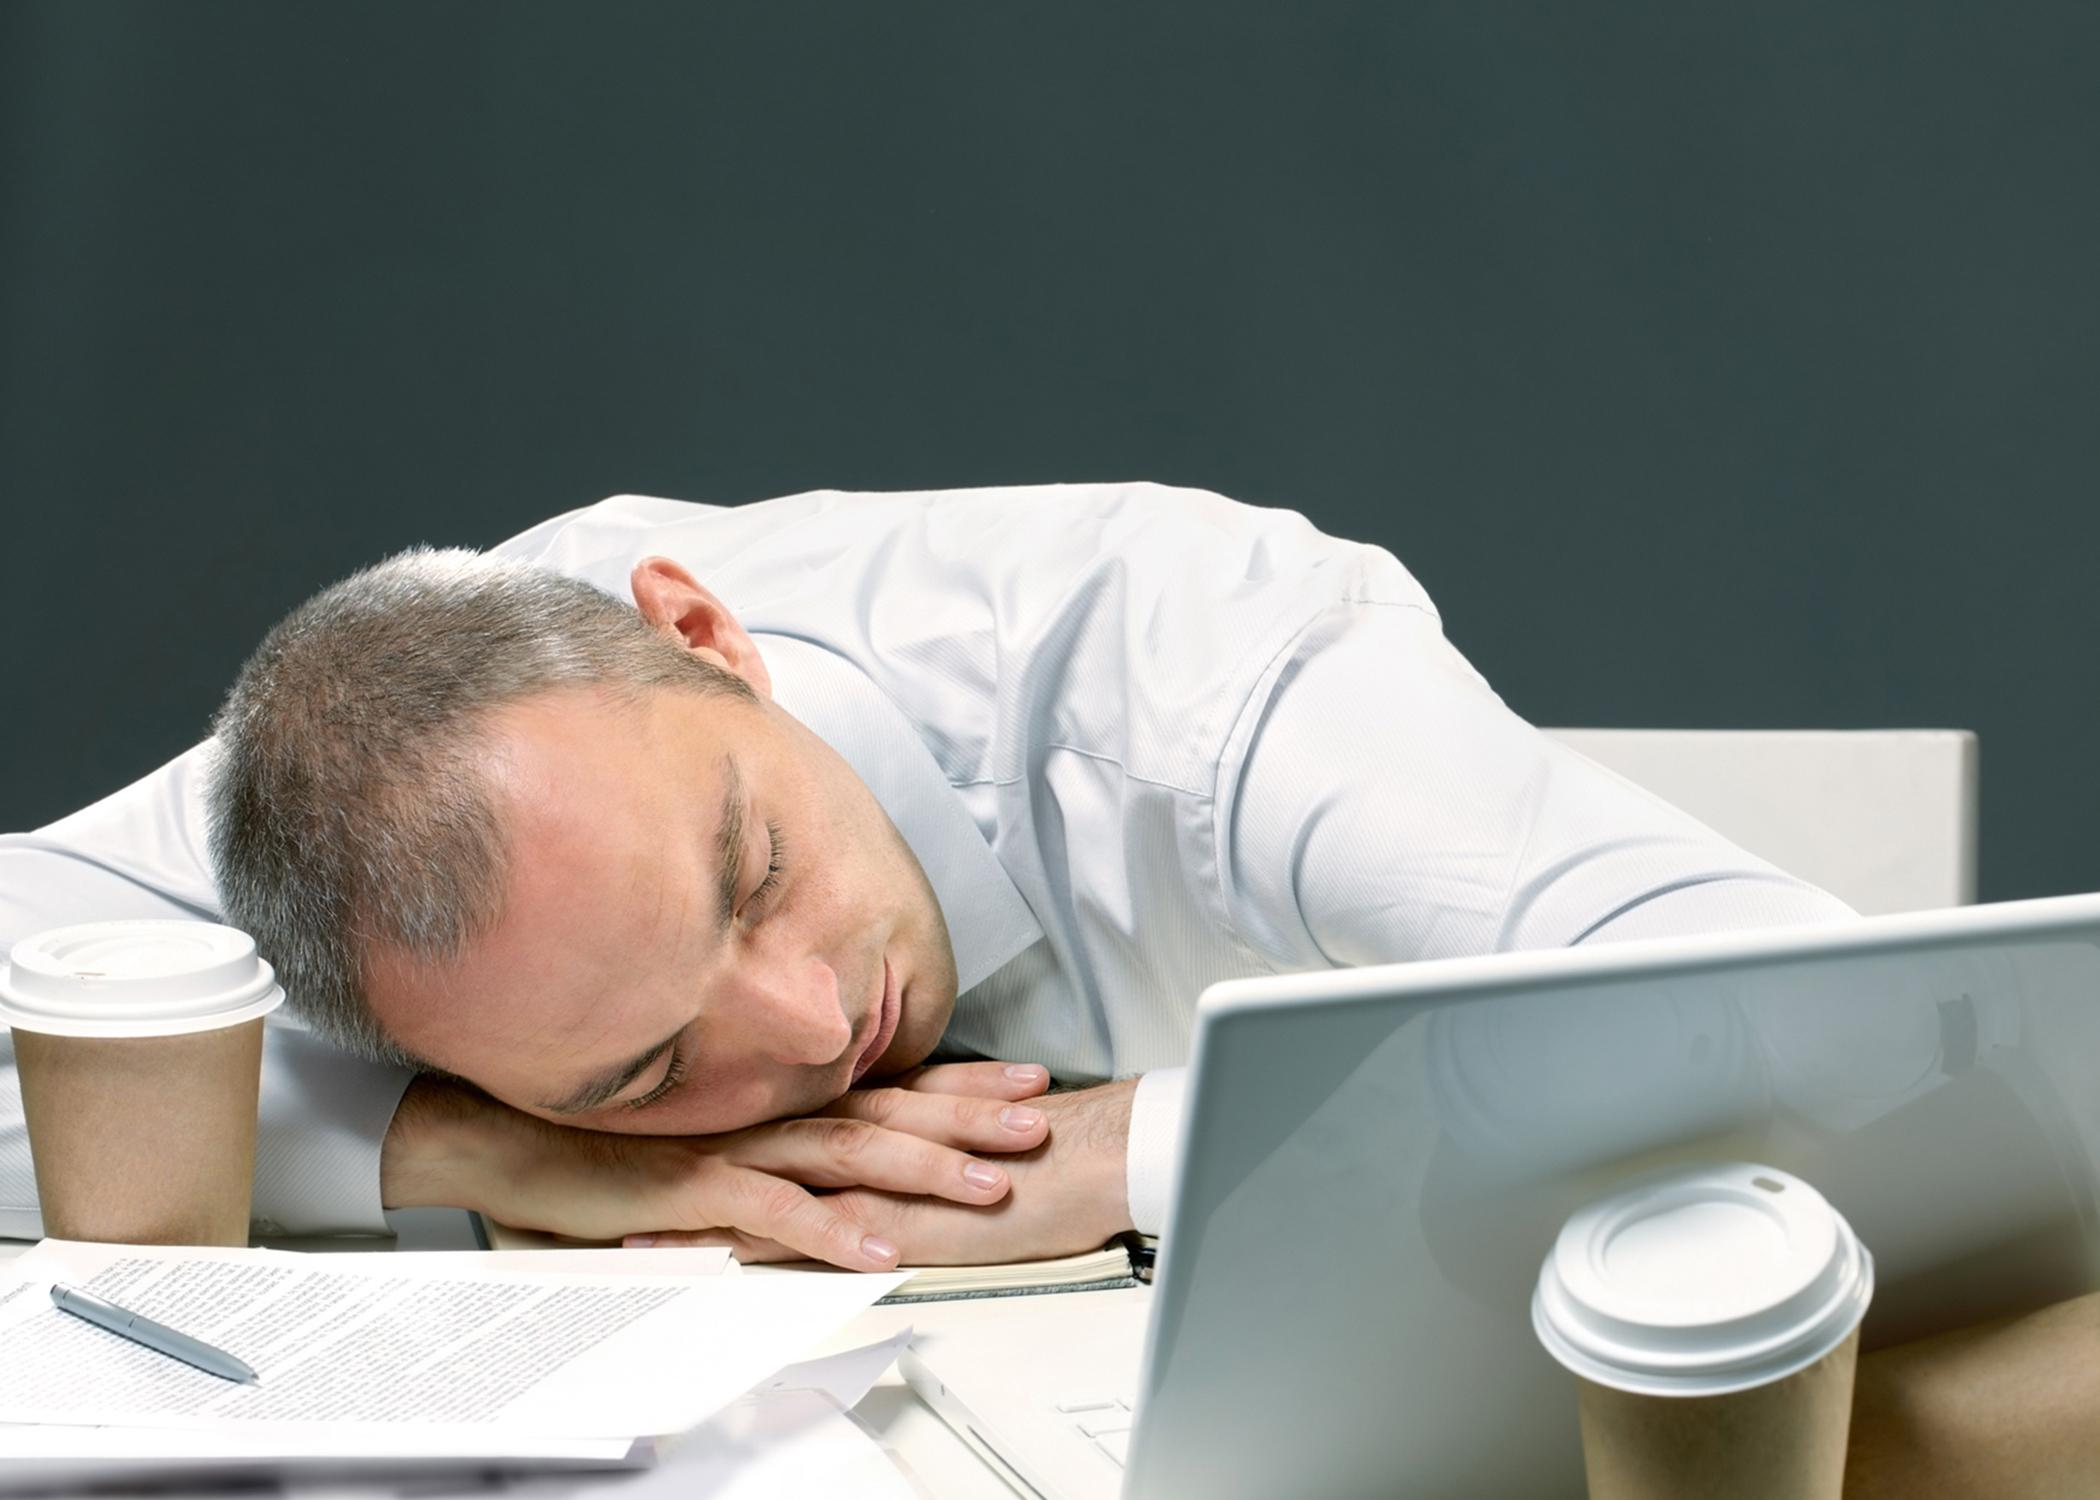 Stress and a lack of sleep can cause fatigue, interfere with productivity, and increase health problems. (Photo by iStock)